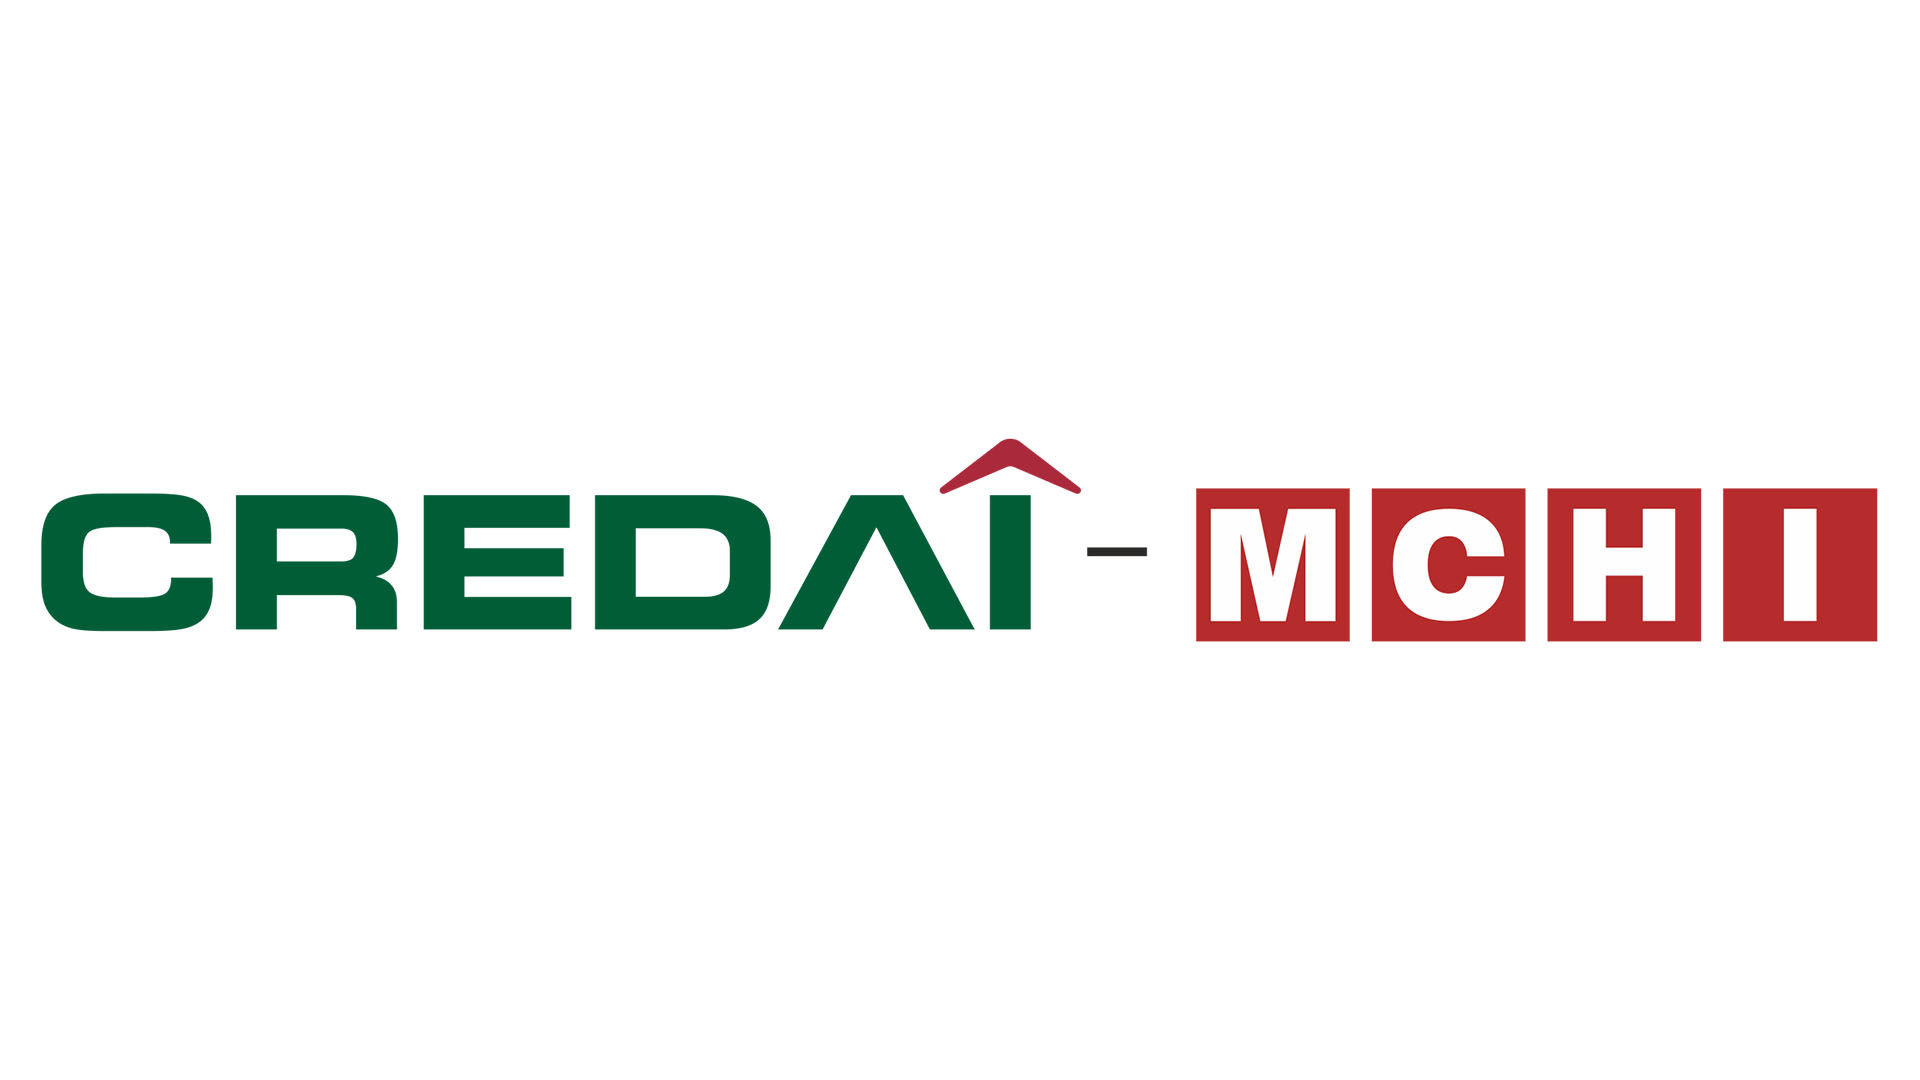 CREDAI-MCHI Organised An Affordable Housing Summit